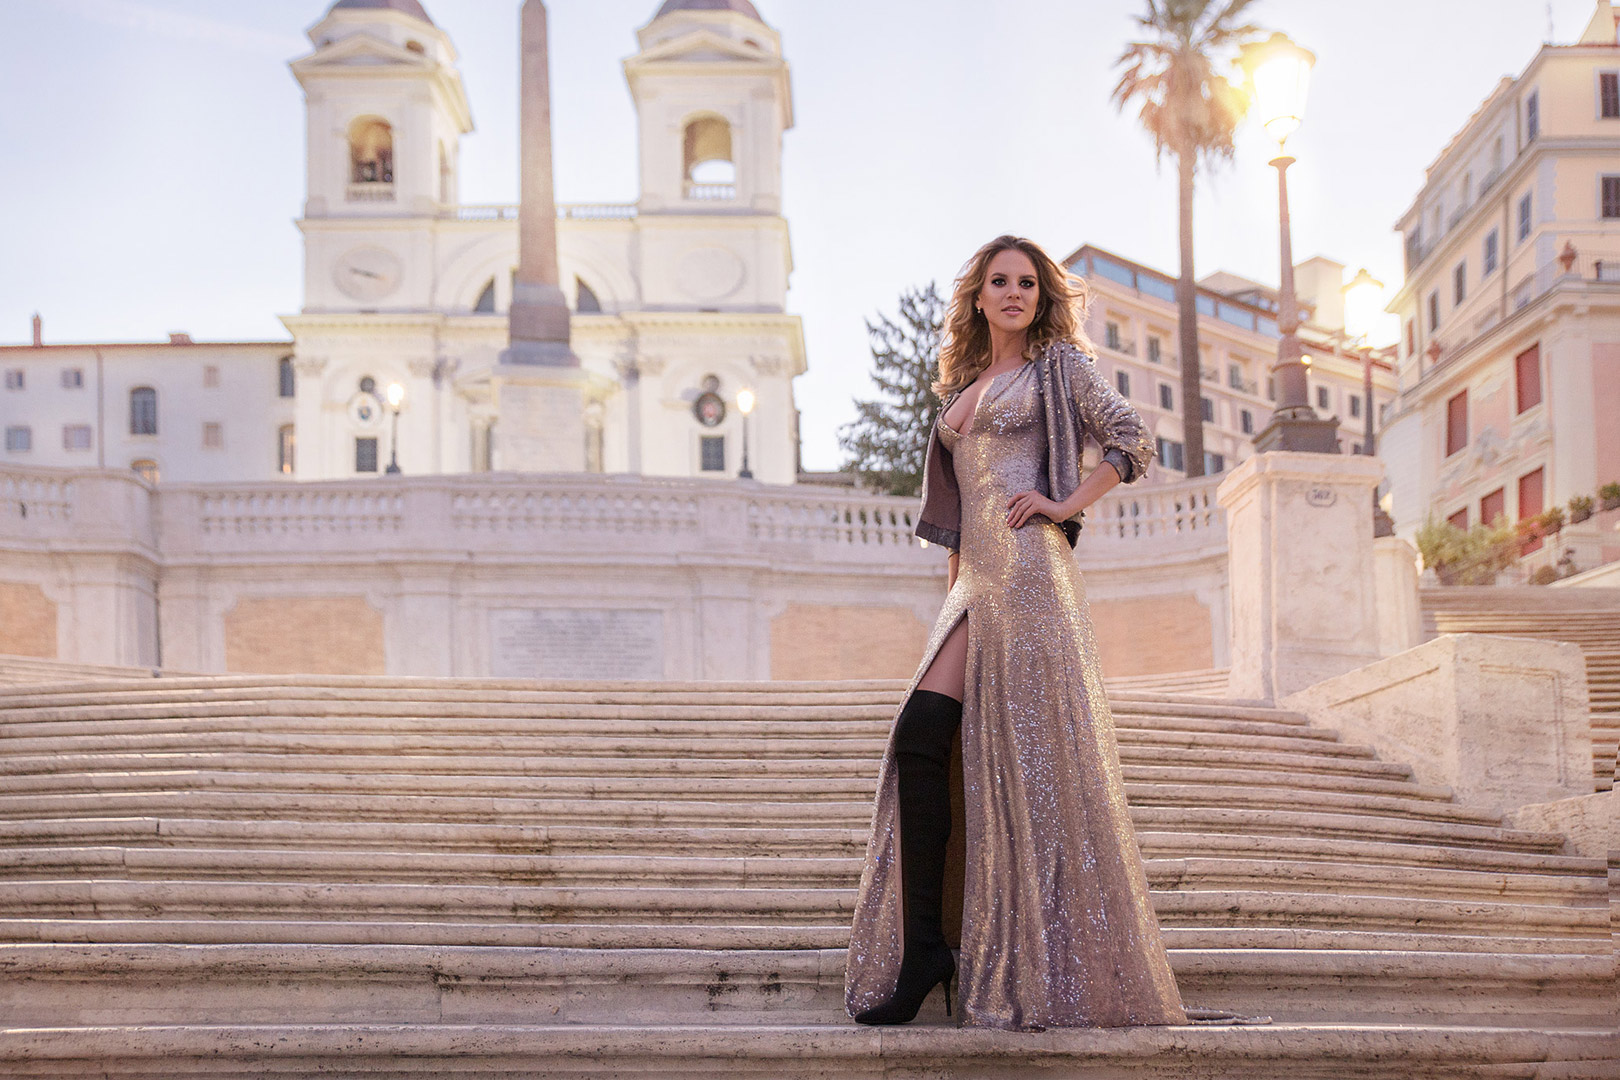 Dream portrait session experience in Rome next to the Spanish Steps